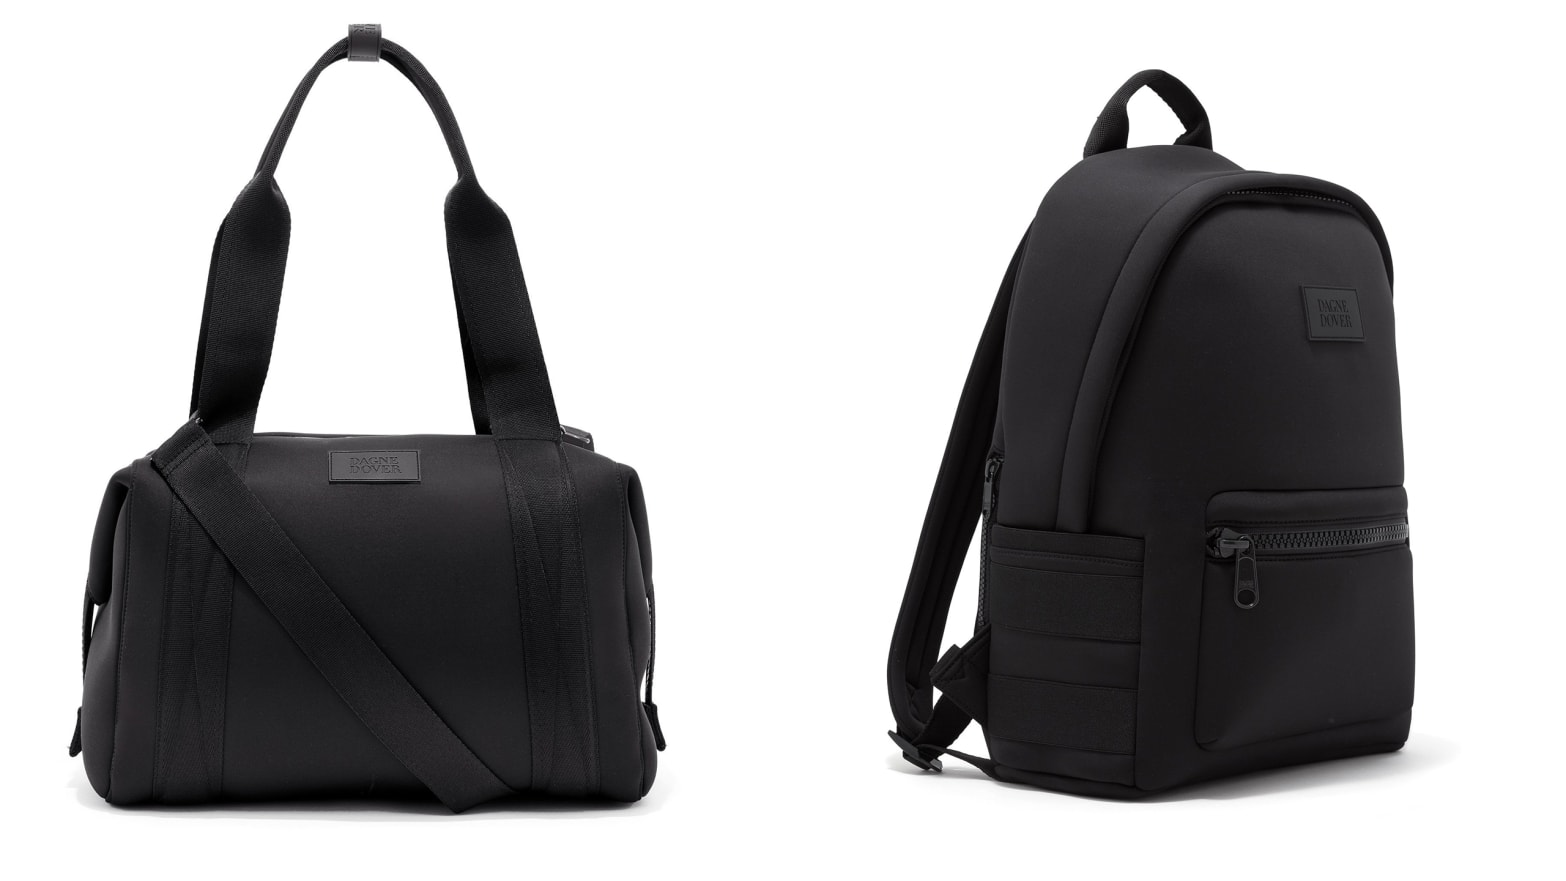 Dagne Dover's Landon and Dakota Commute Bags Can Handle Your